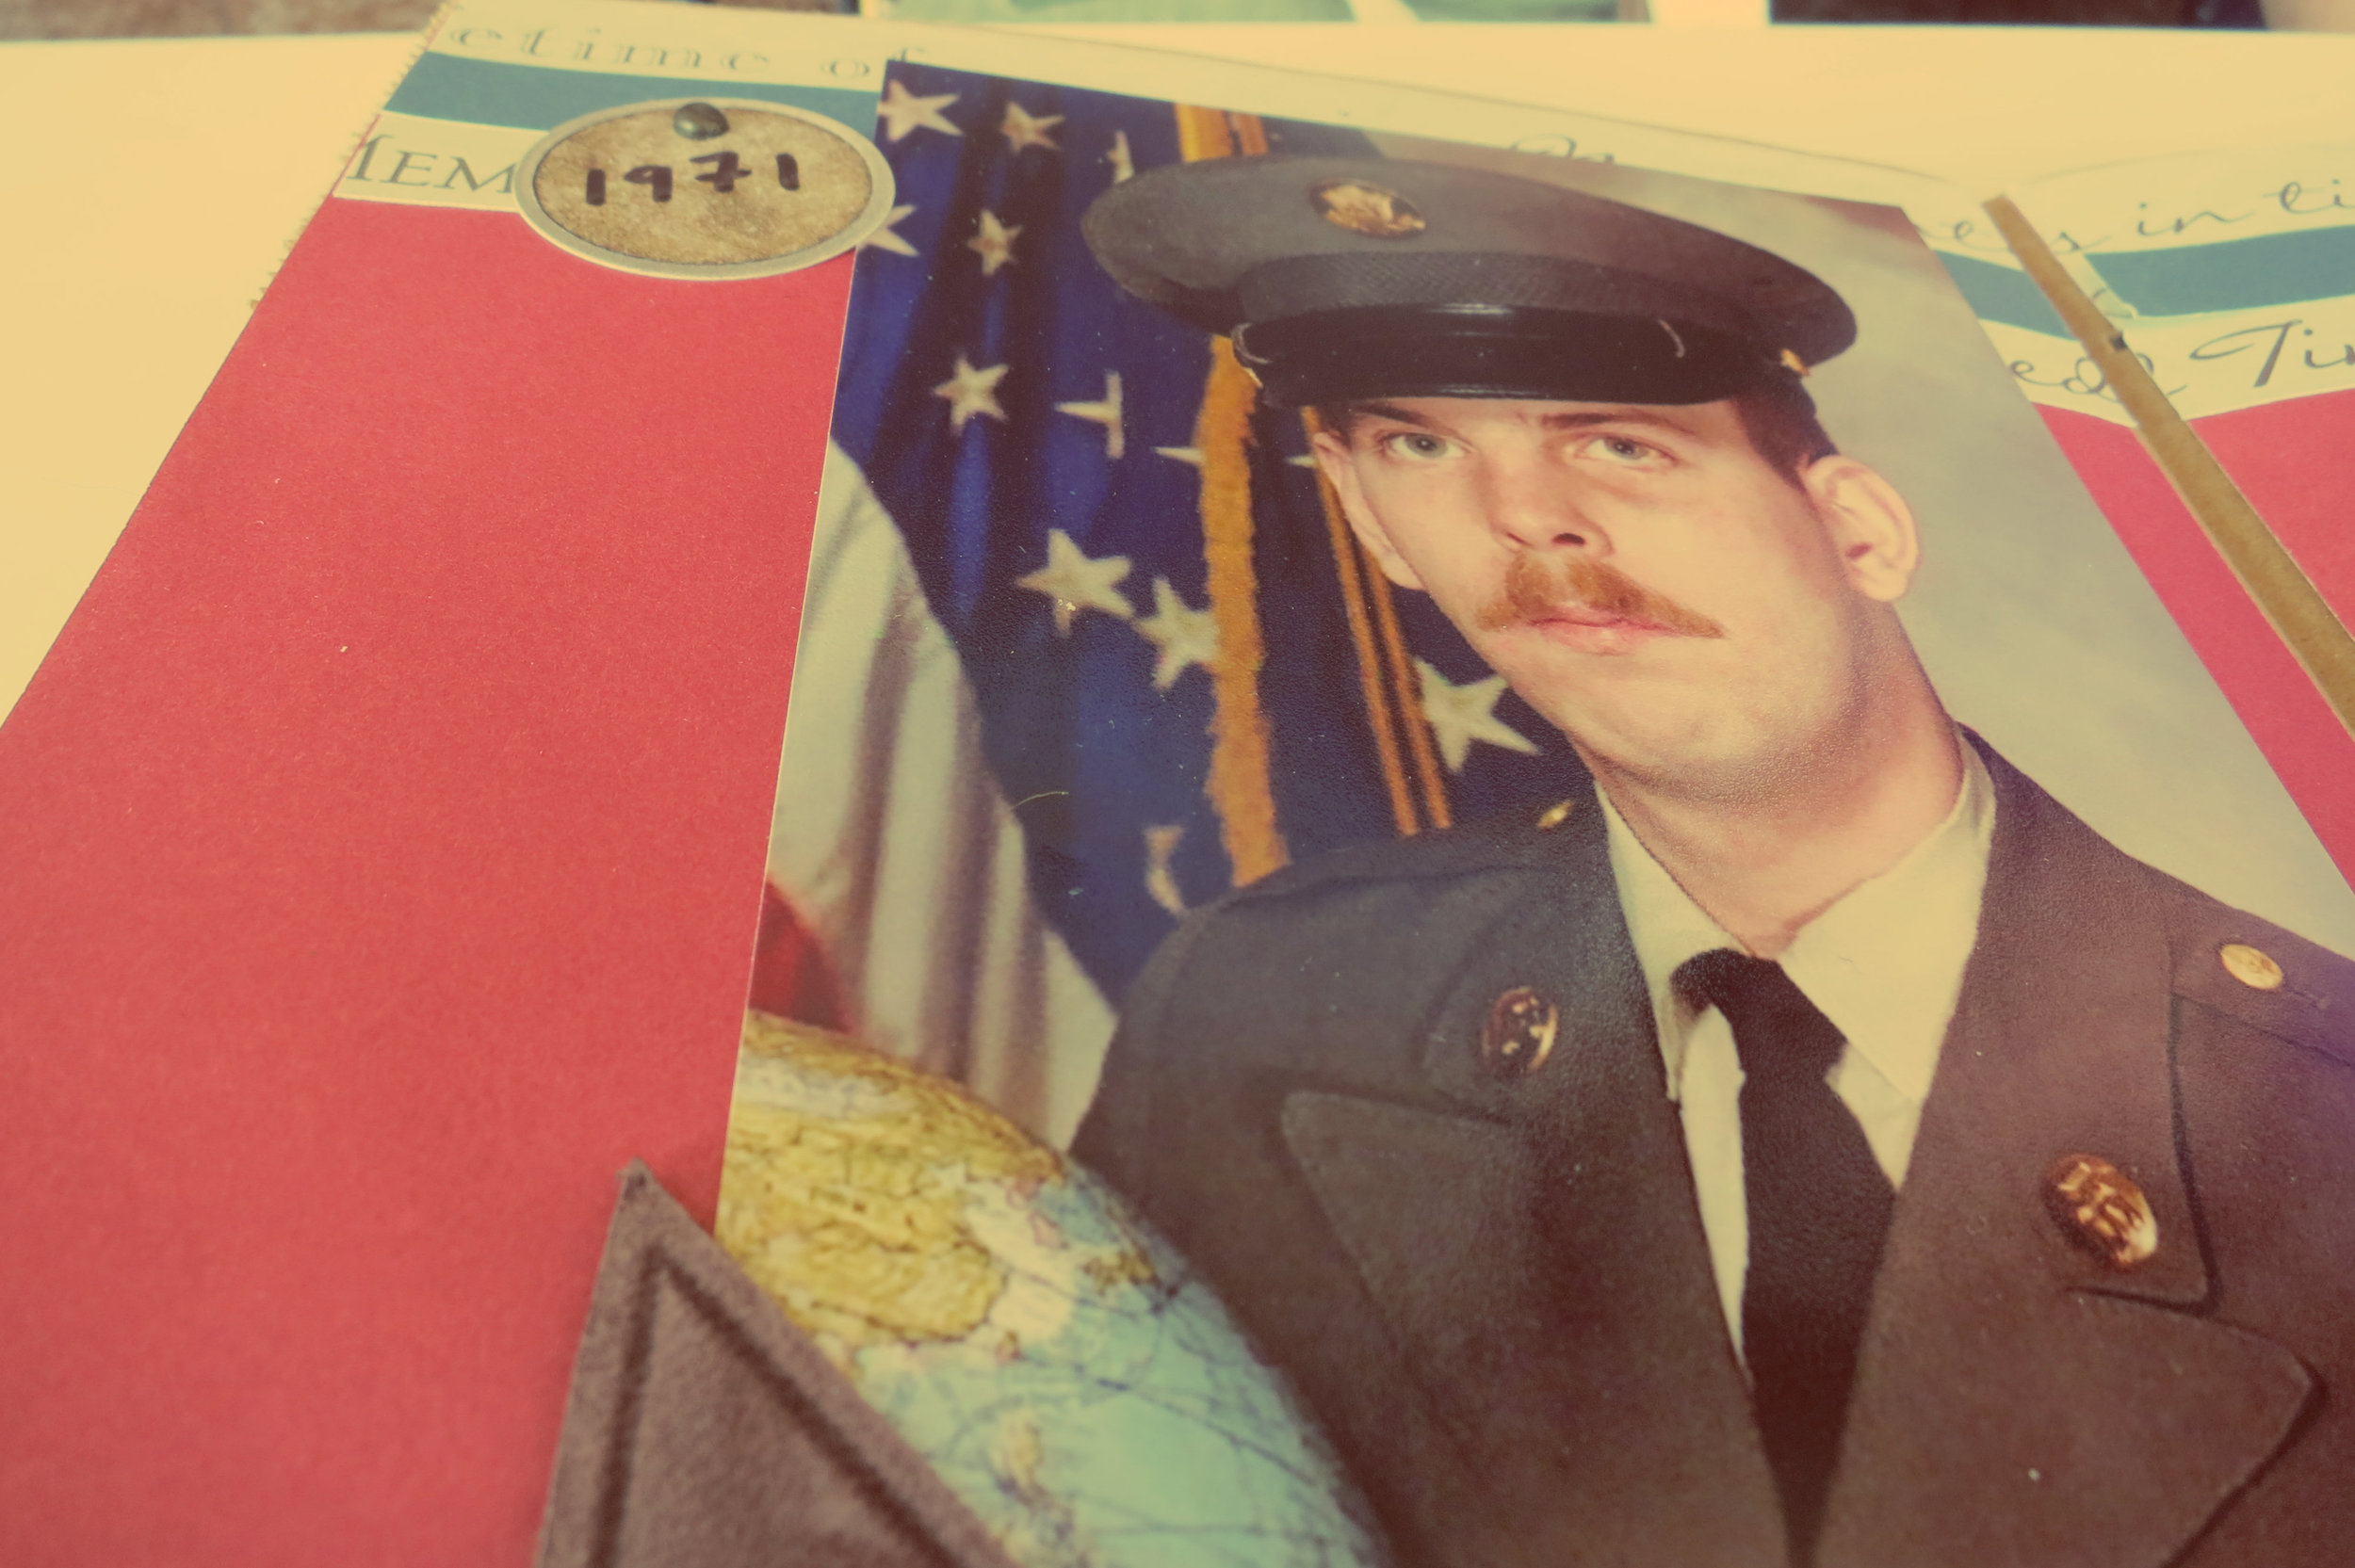 A picture Bean keeps of her Dad of when he was in the service before being medically discharged.